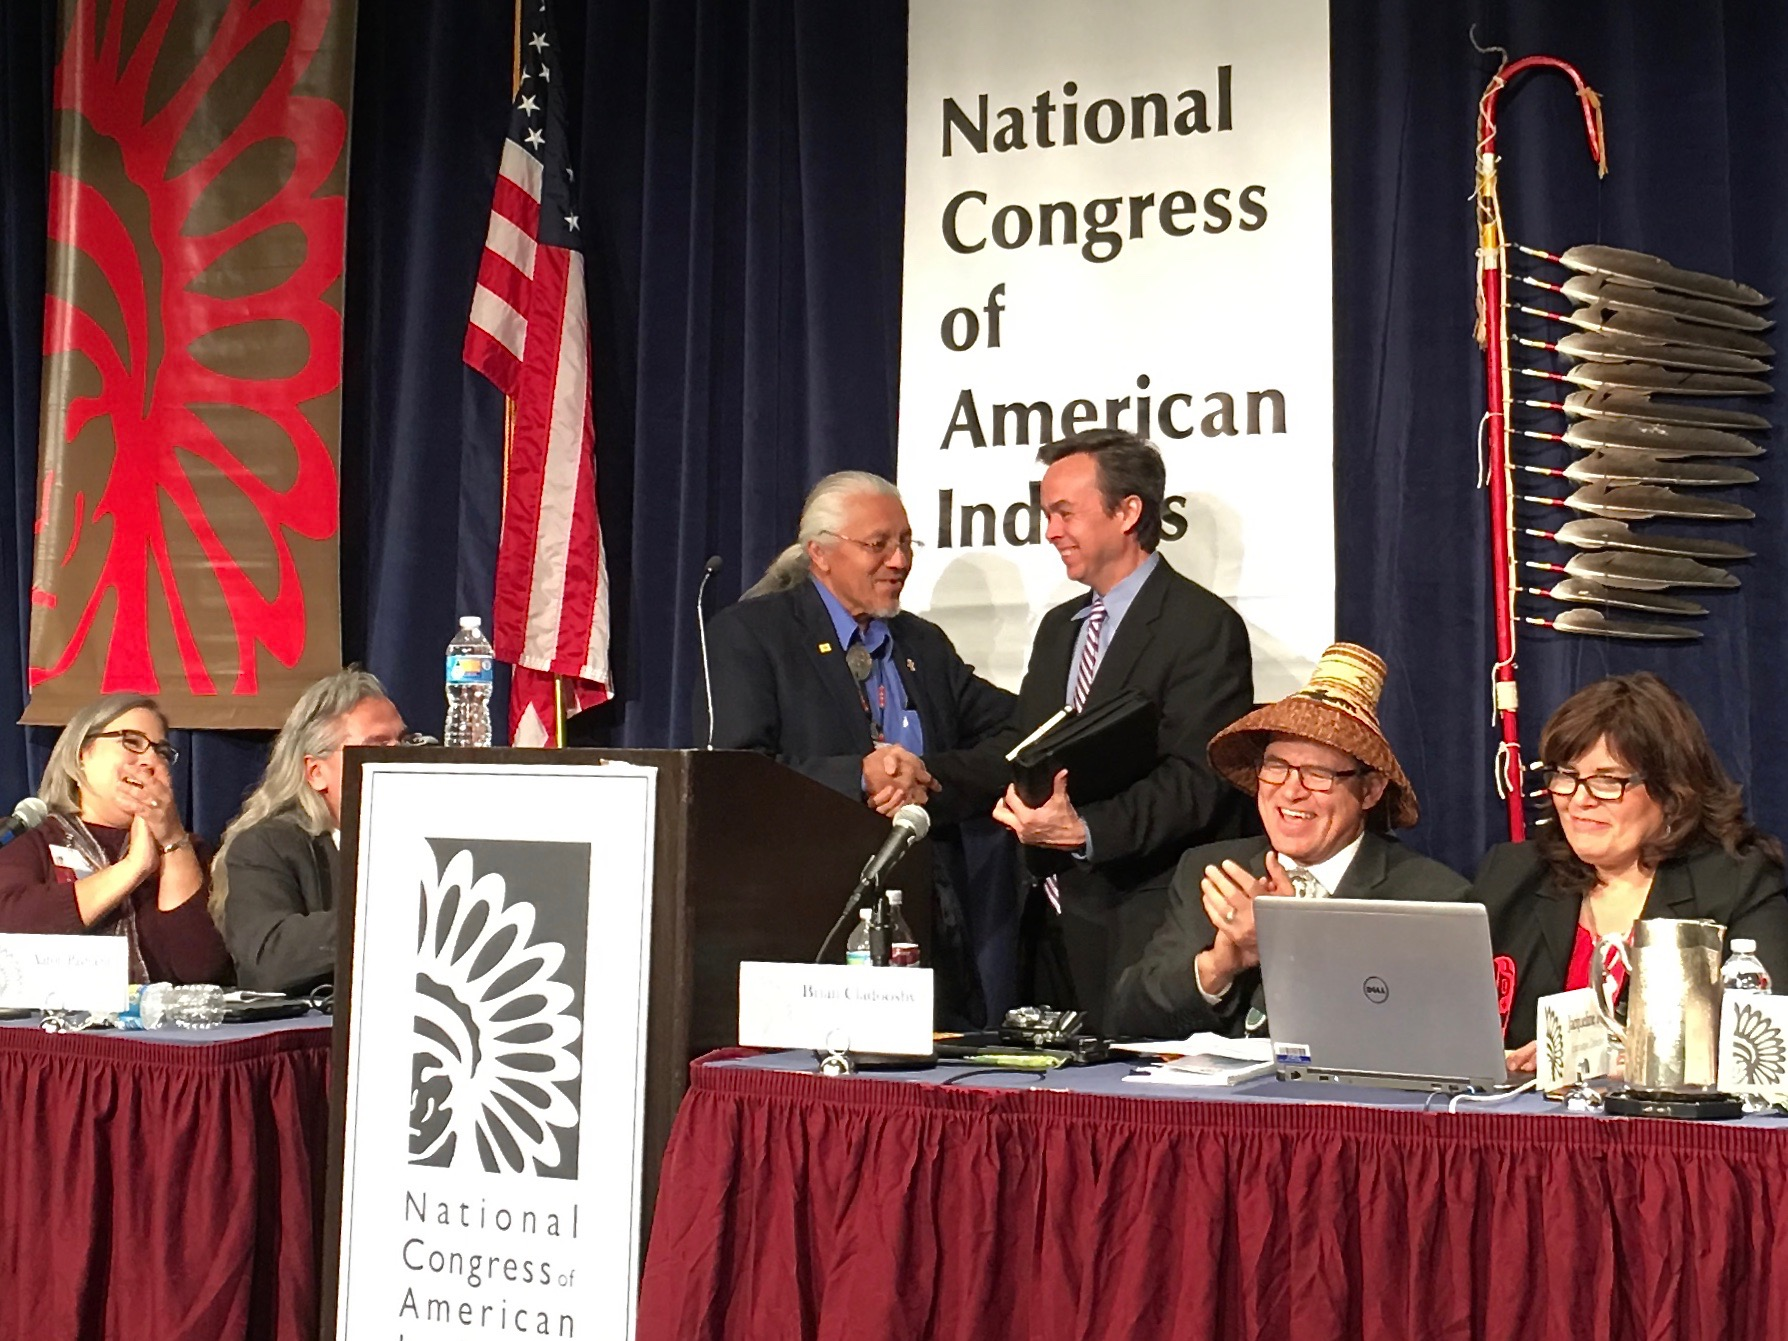 Bureau of Indian Affairs in final push as Obama era nears its end